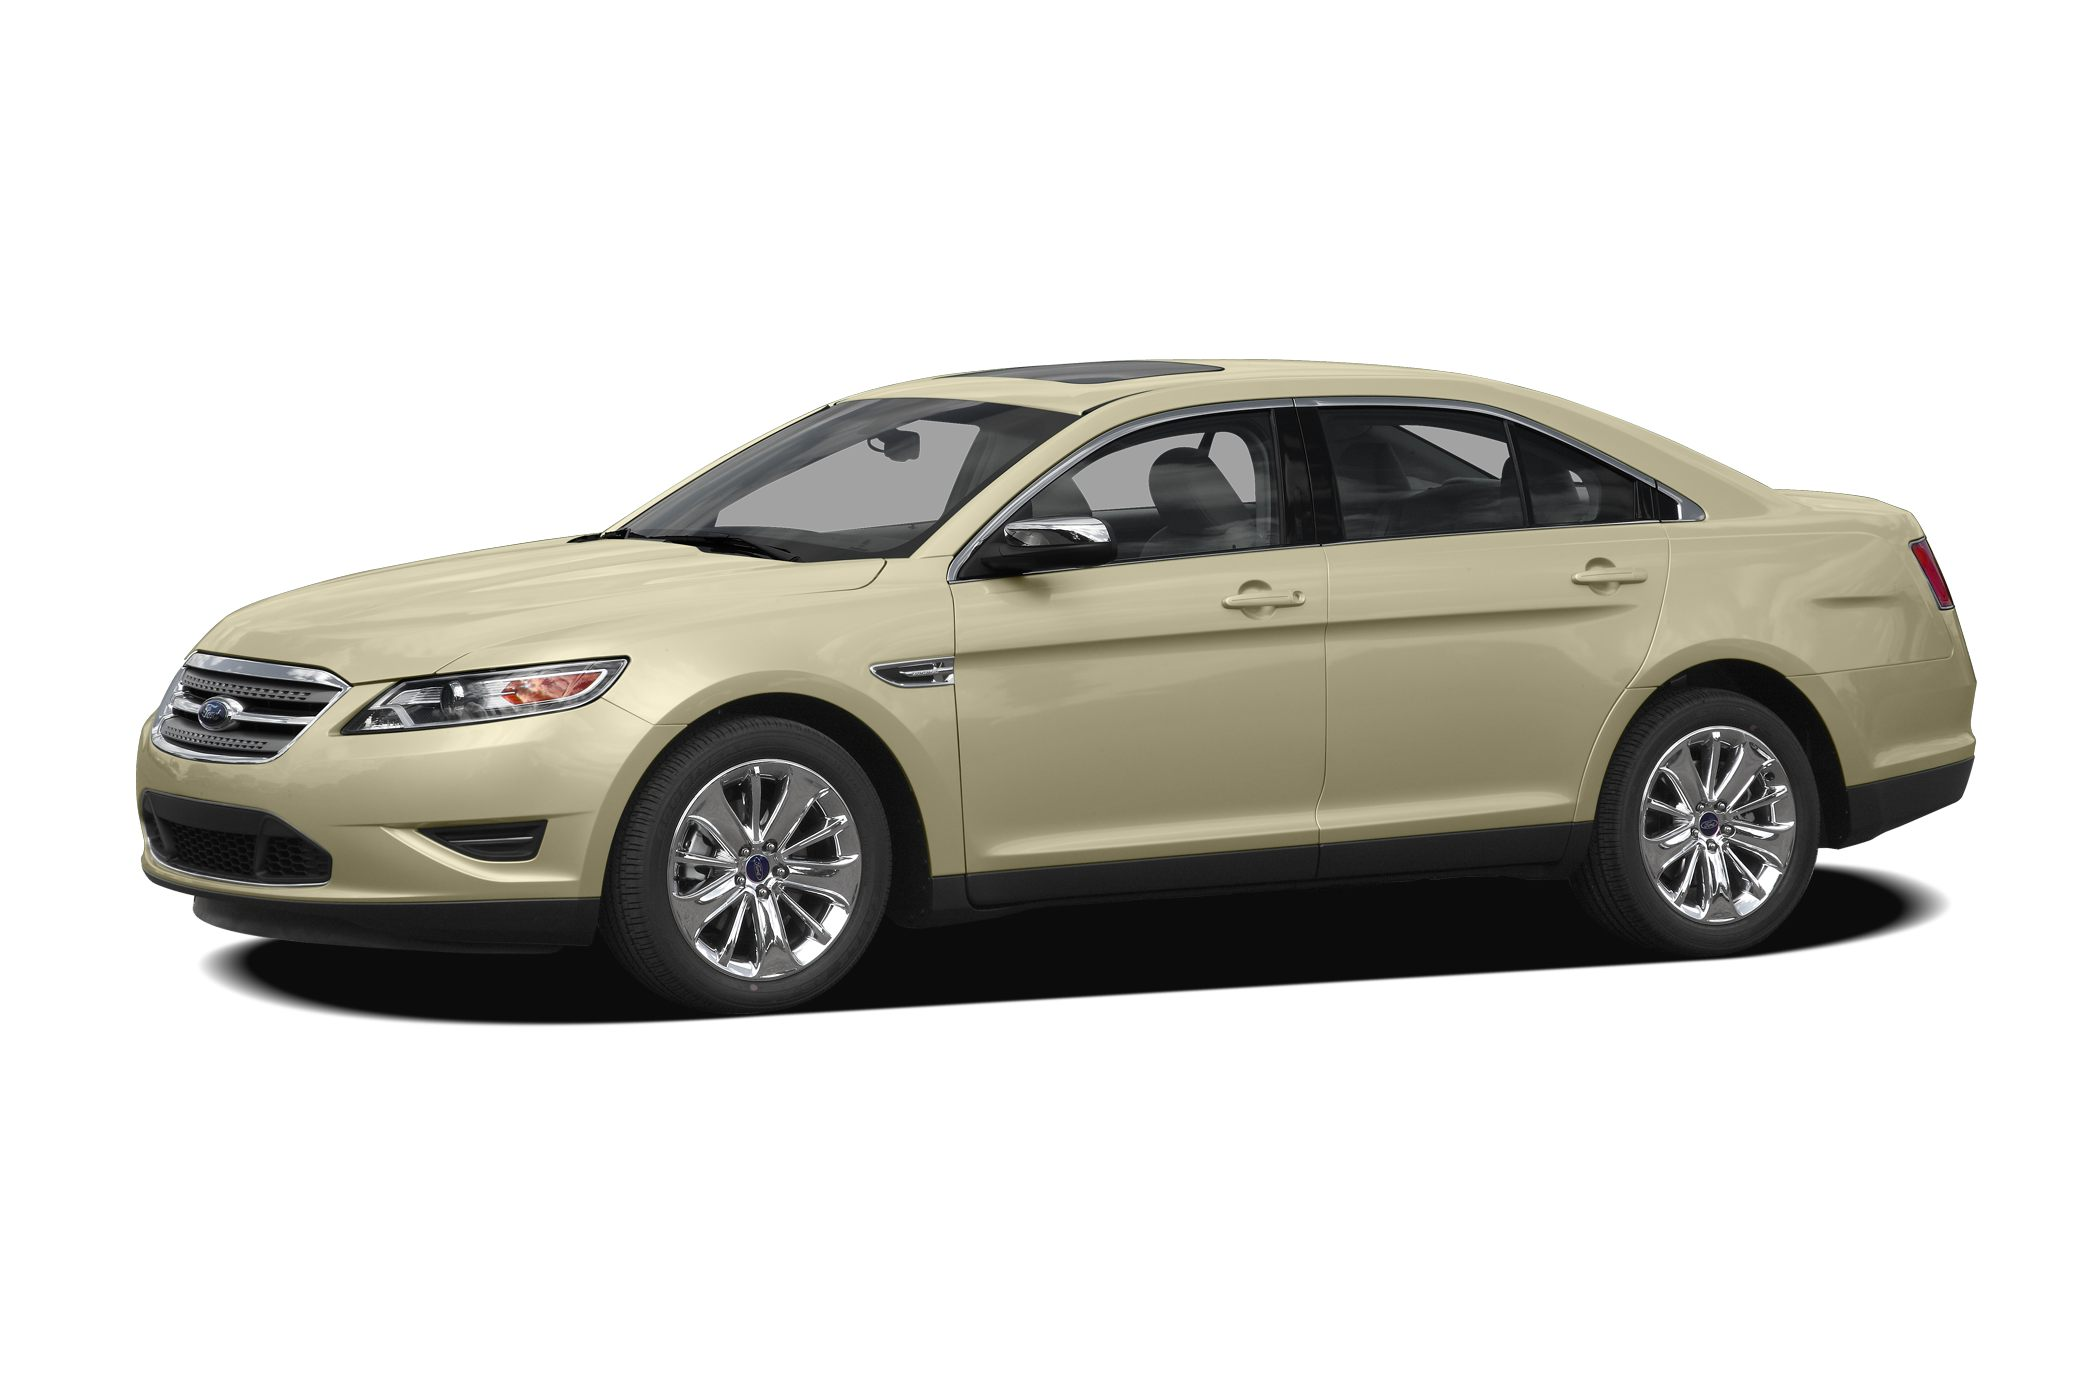 2011 Ford Taurus Limited Sedan for sale in Edenton for $17,995 with 57,267 miles.